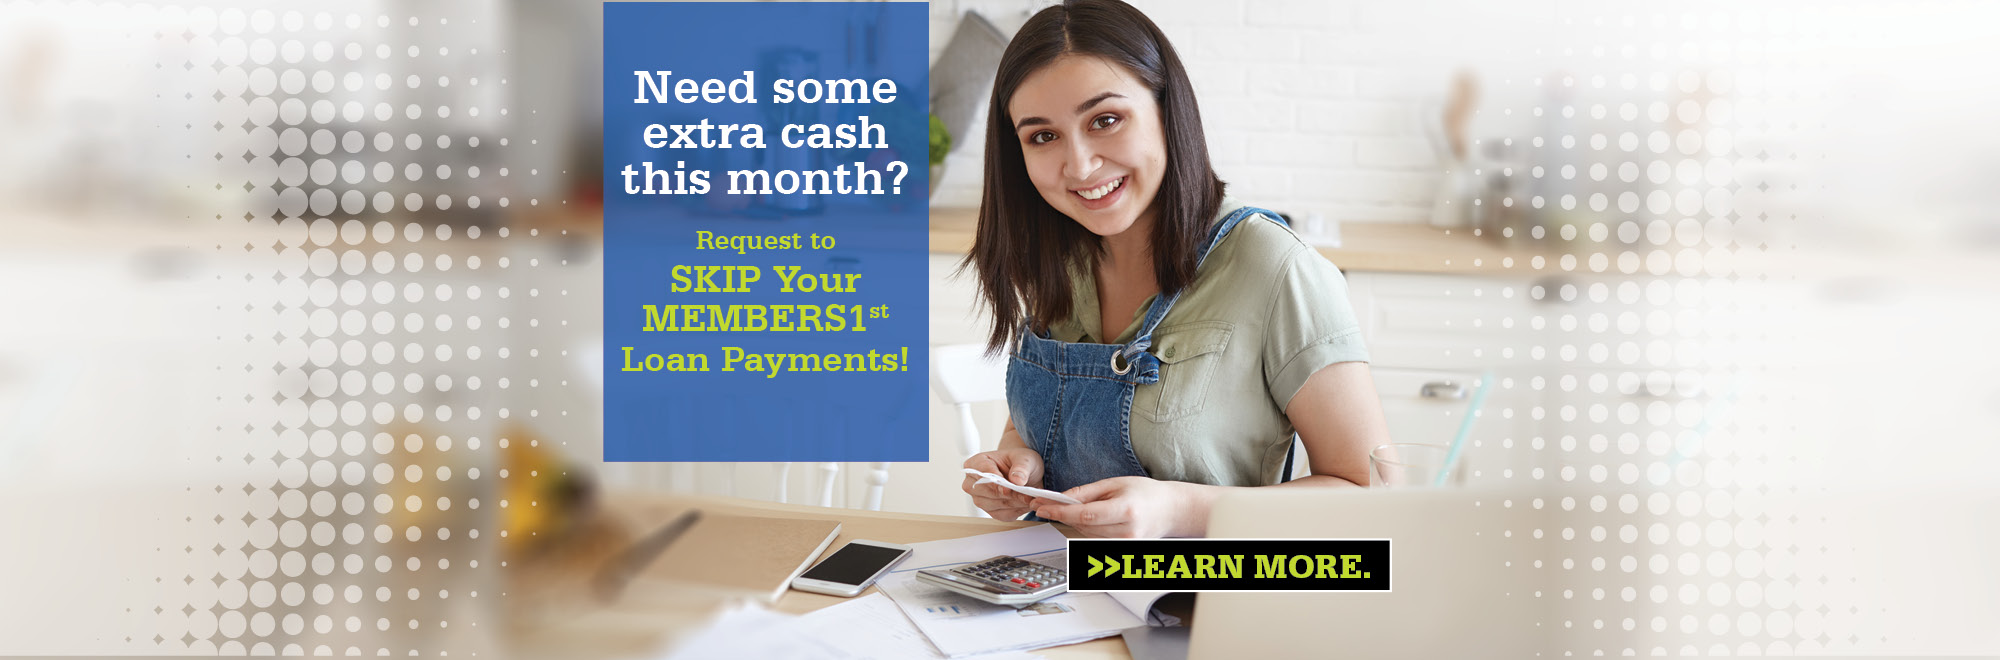 Skip your MEMBERS1st loan payments for one month.